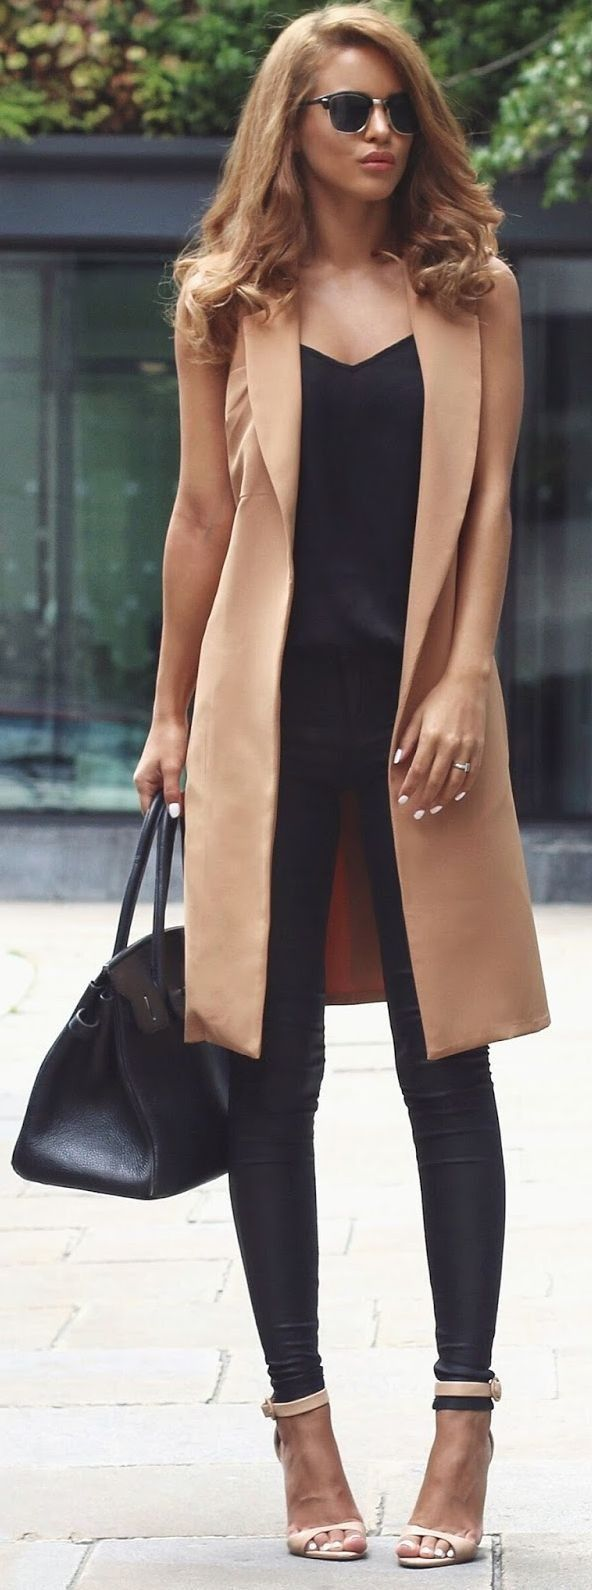 nude, black, casual, chic, outfit, idea, nada, adell                                                                                                                                                                                 More